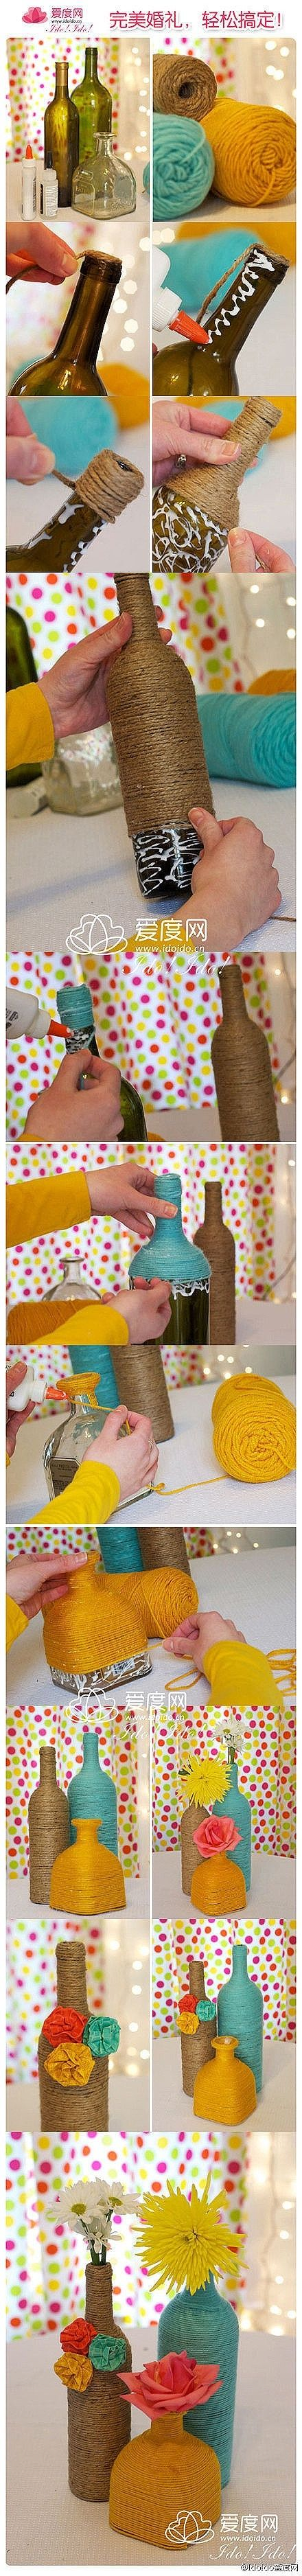 DIY Yarn Bottle Vase. Have the bottles . I am soo making this!!!